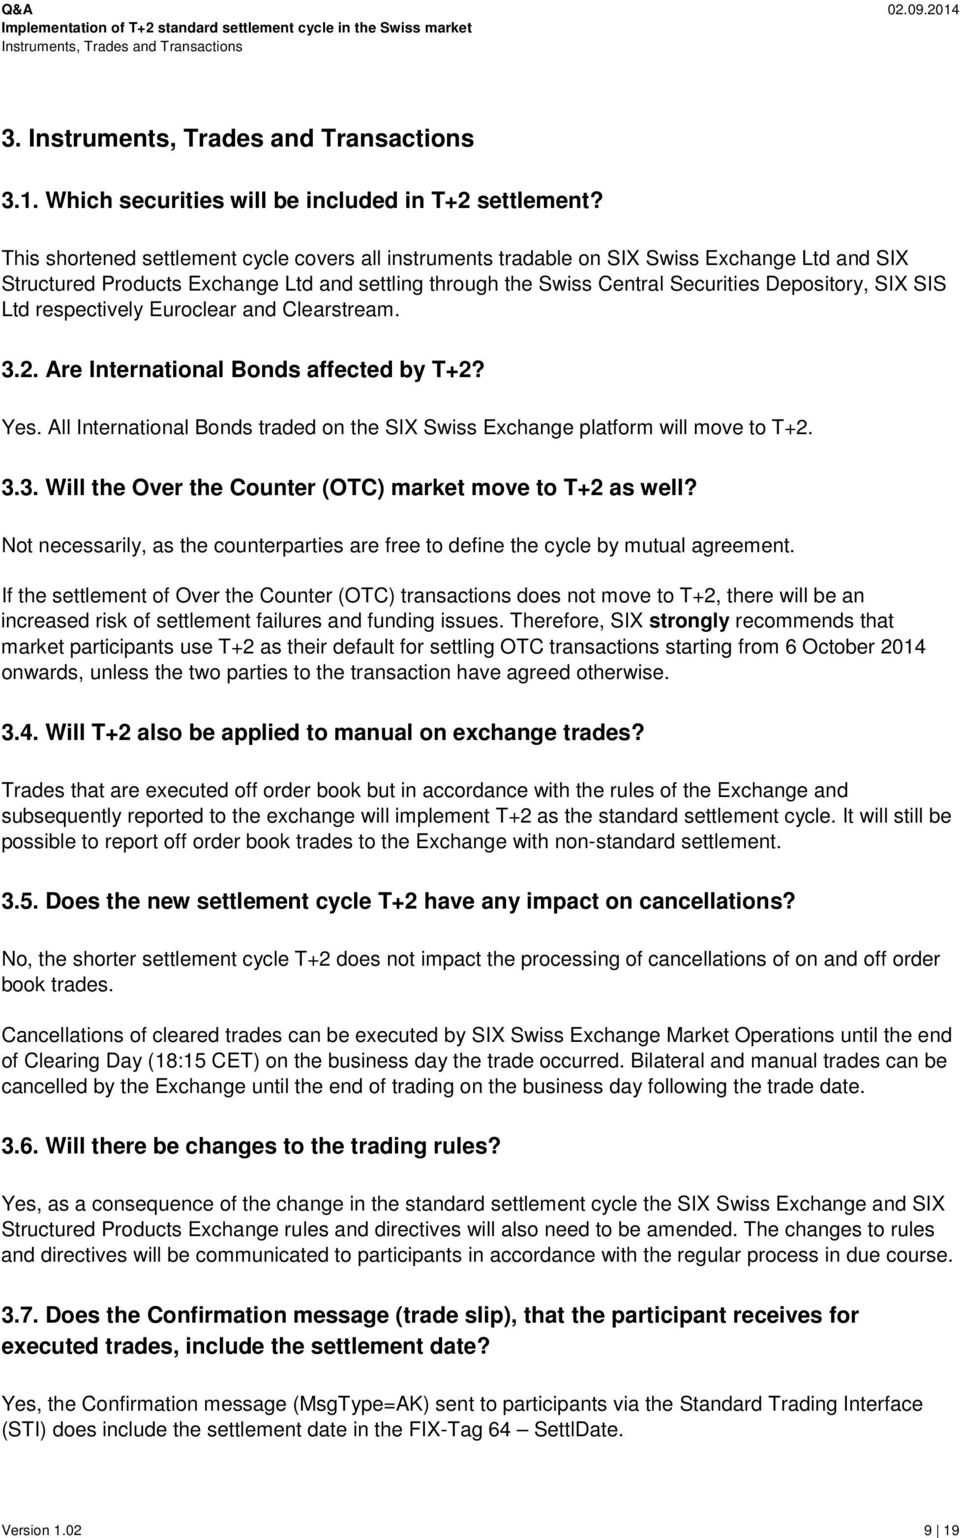 SIS Ltd respectively Euroclear and Clearstream. 3.2. Are International Bonds affected by T+2? Yes. All International Bonds traded on the SIX Swiss Exchange platform will move to T+2. 3.3. Will the Over the Counter (OTC) market move to T+2 as well?